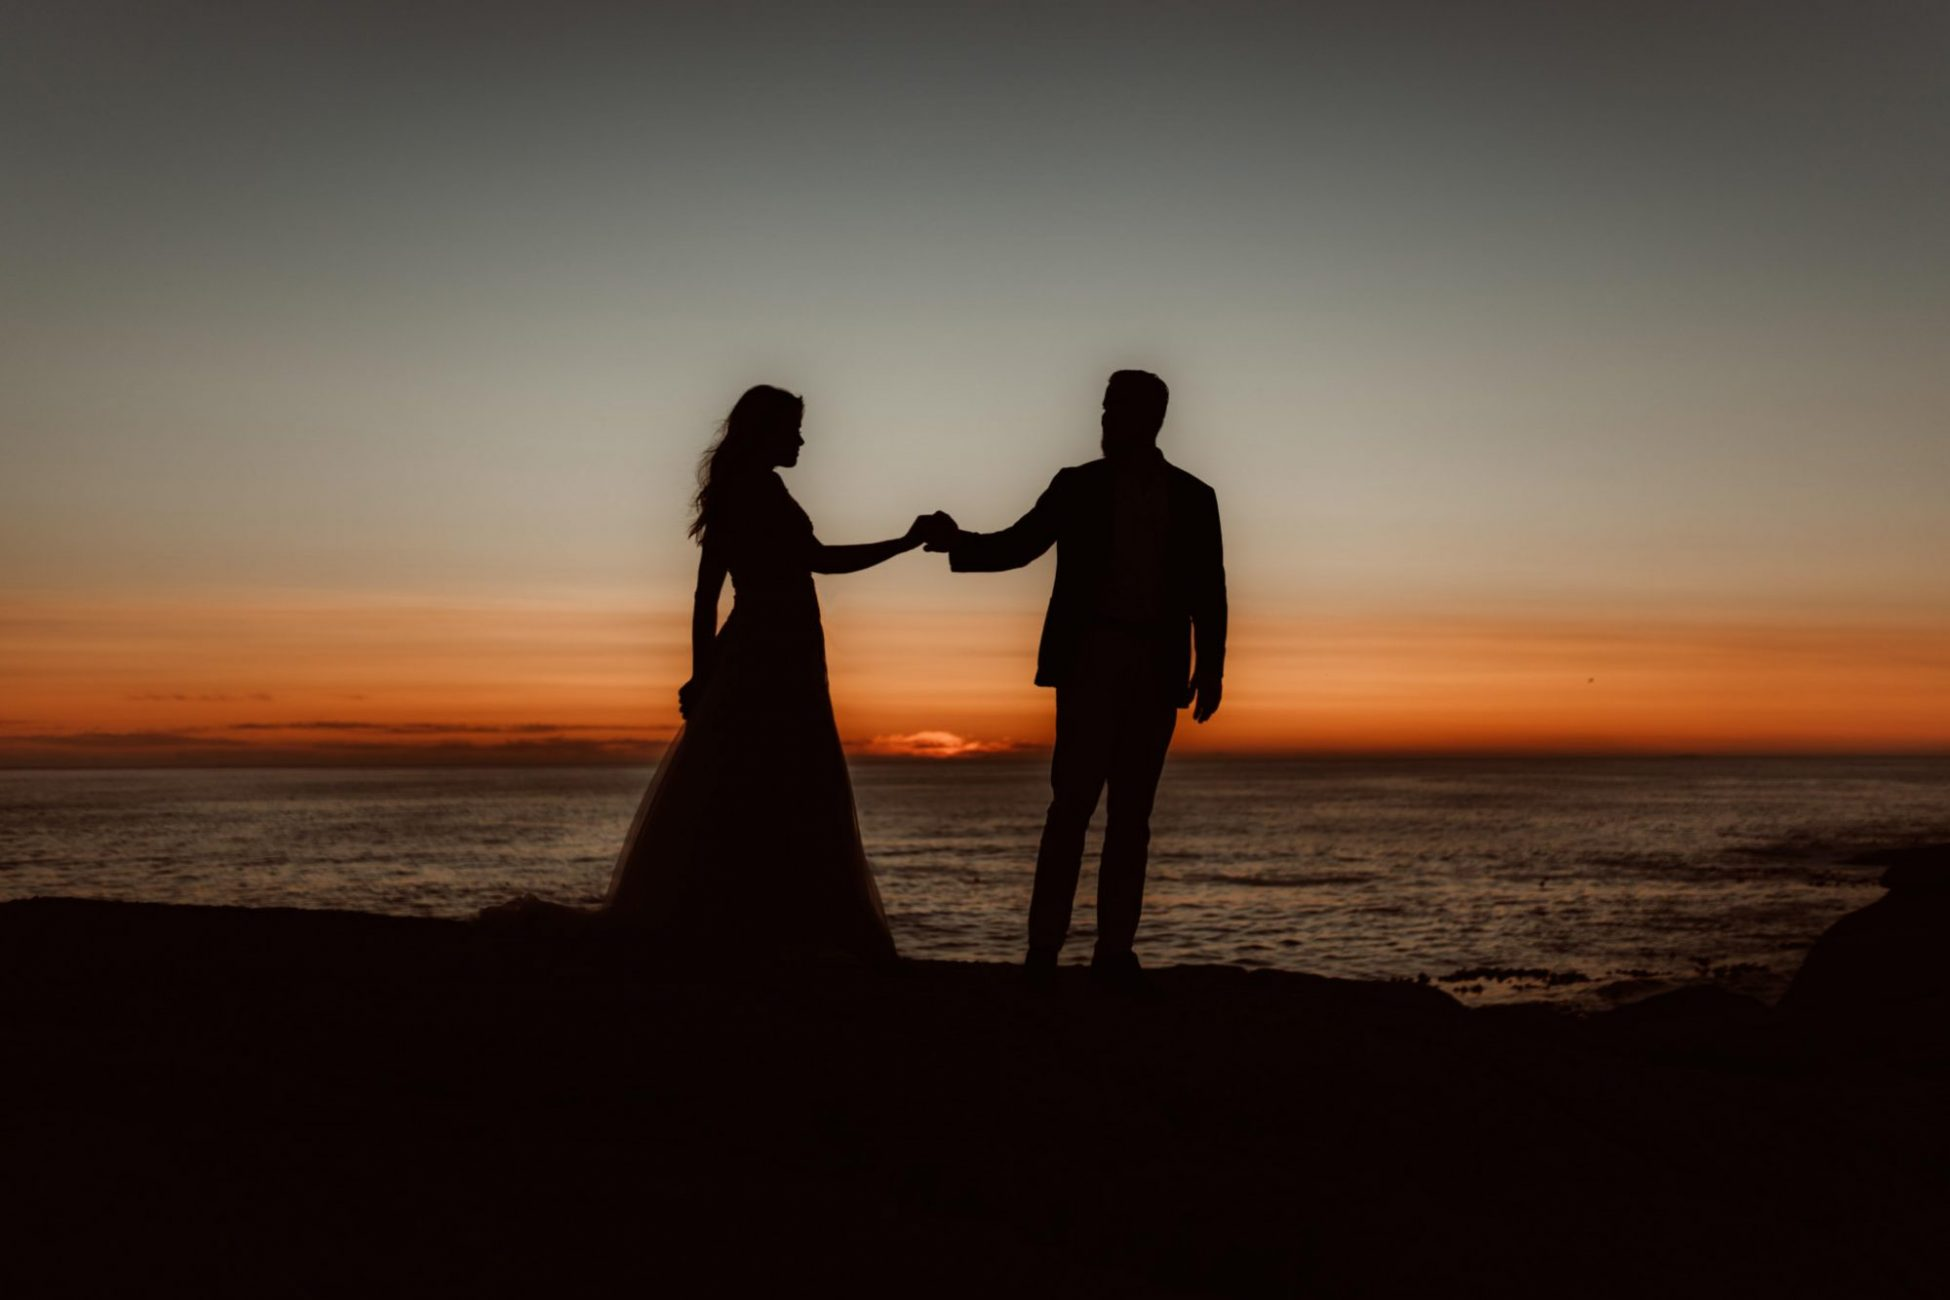 camps-bay-post-wedding-couple-photoshoot-cr8tiveduo-photographer-sunset-ocean-views-orange-sky-silhouettes